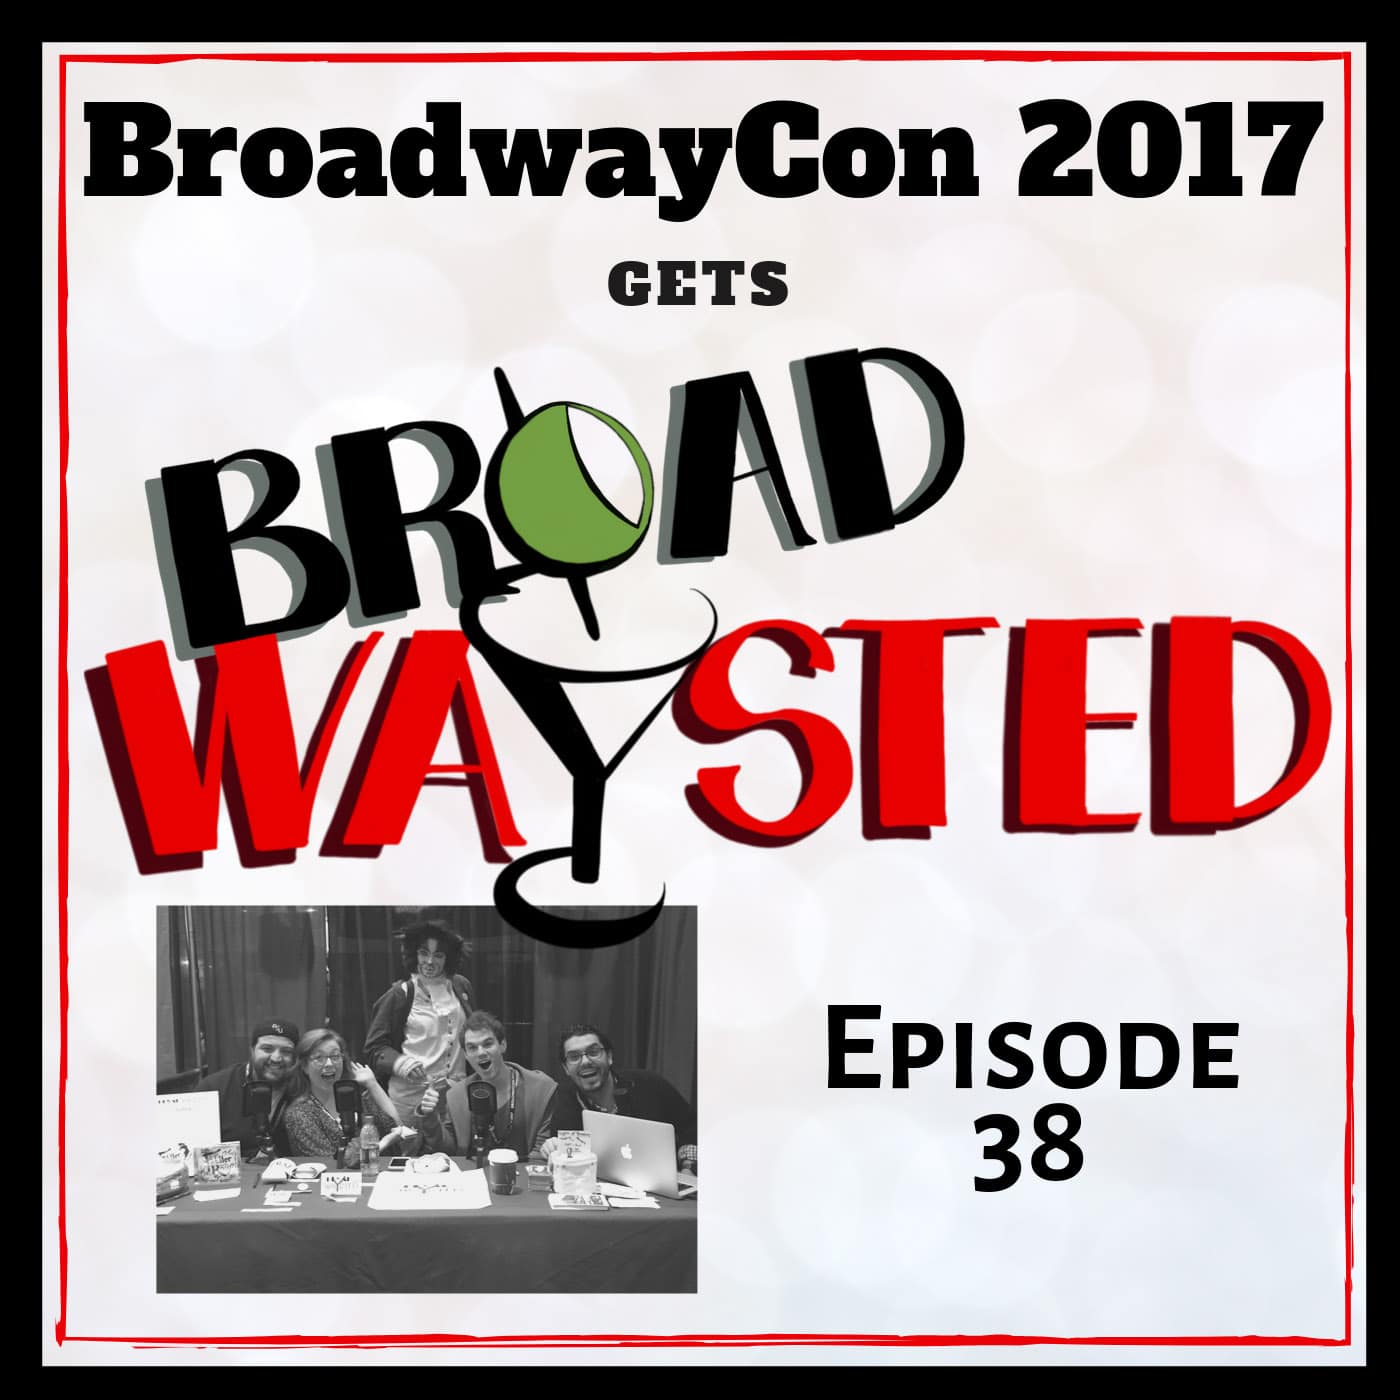 Broadwaysted Ep 38 BroadwayCon 2017